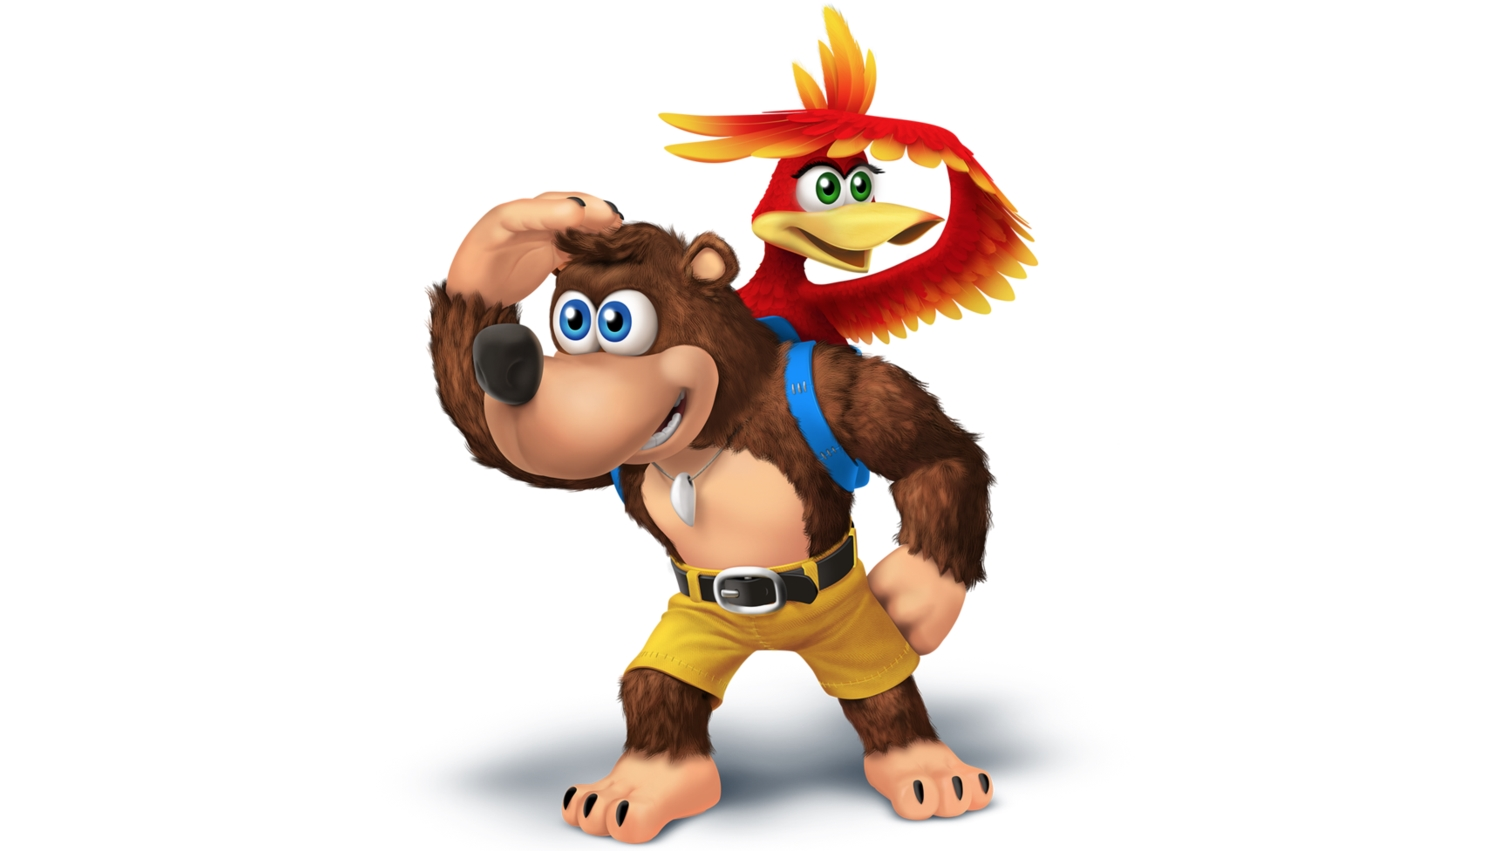 Are Banjo and Kazooie looking to make their Smash debut? (pic: Omni Jacalantern)